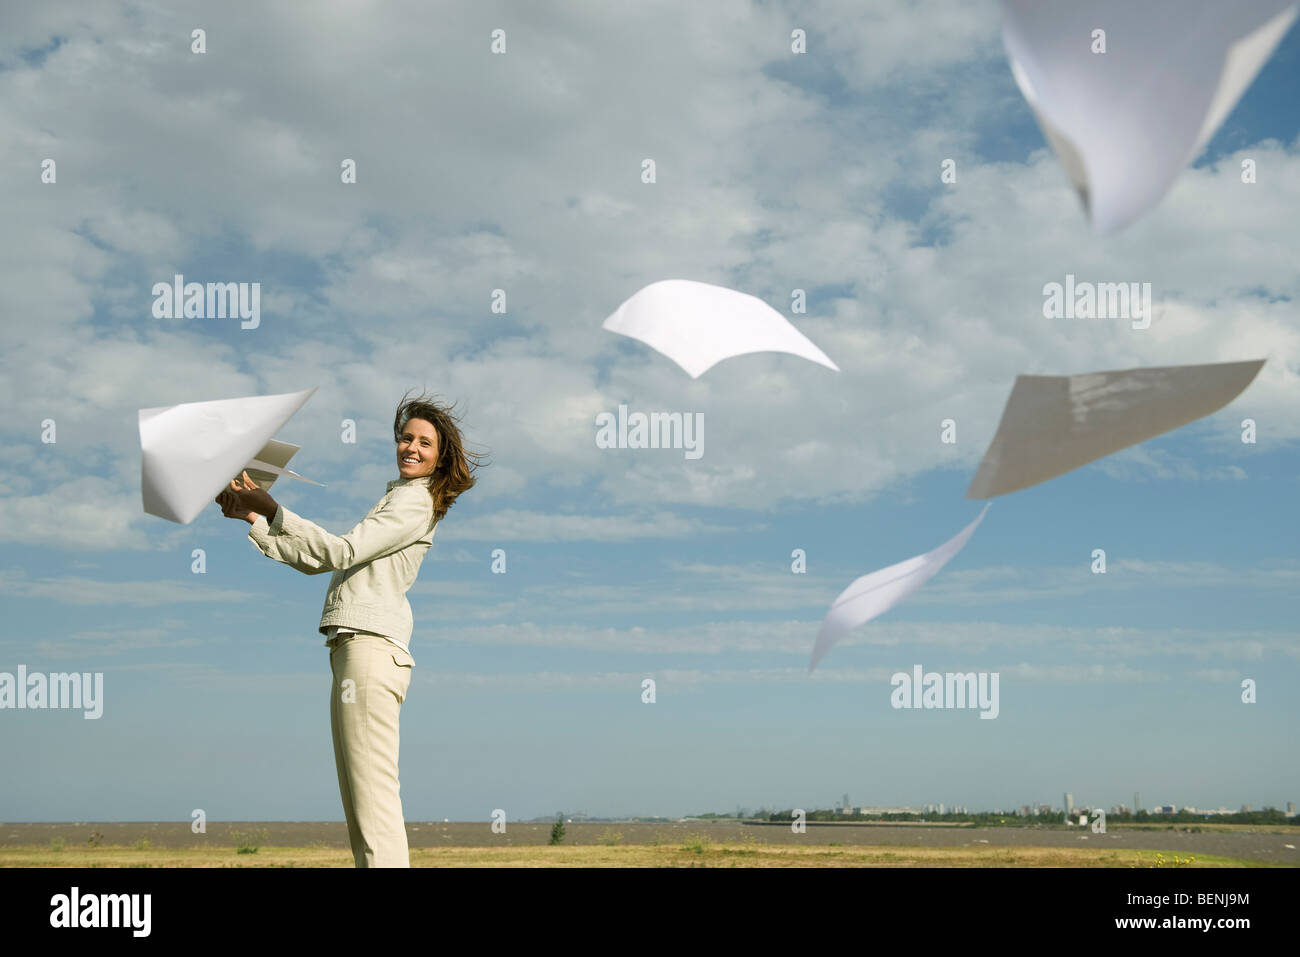 Woman outdoors tossing document into air watching pages caught by wind fly away - Stock Image